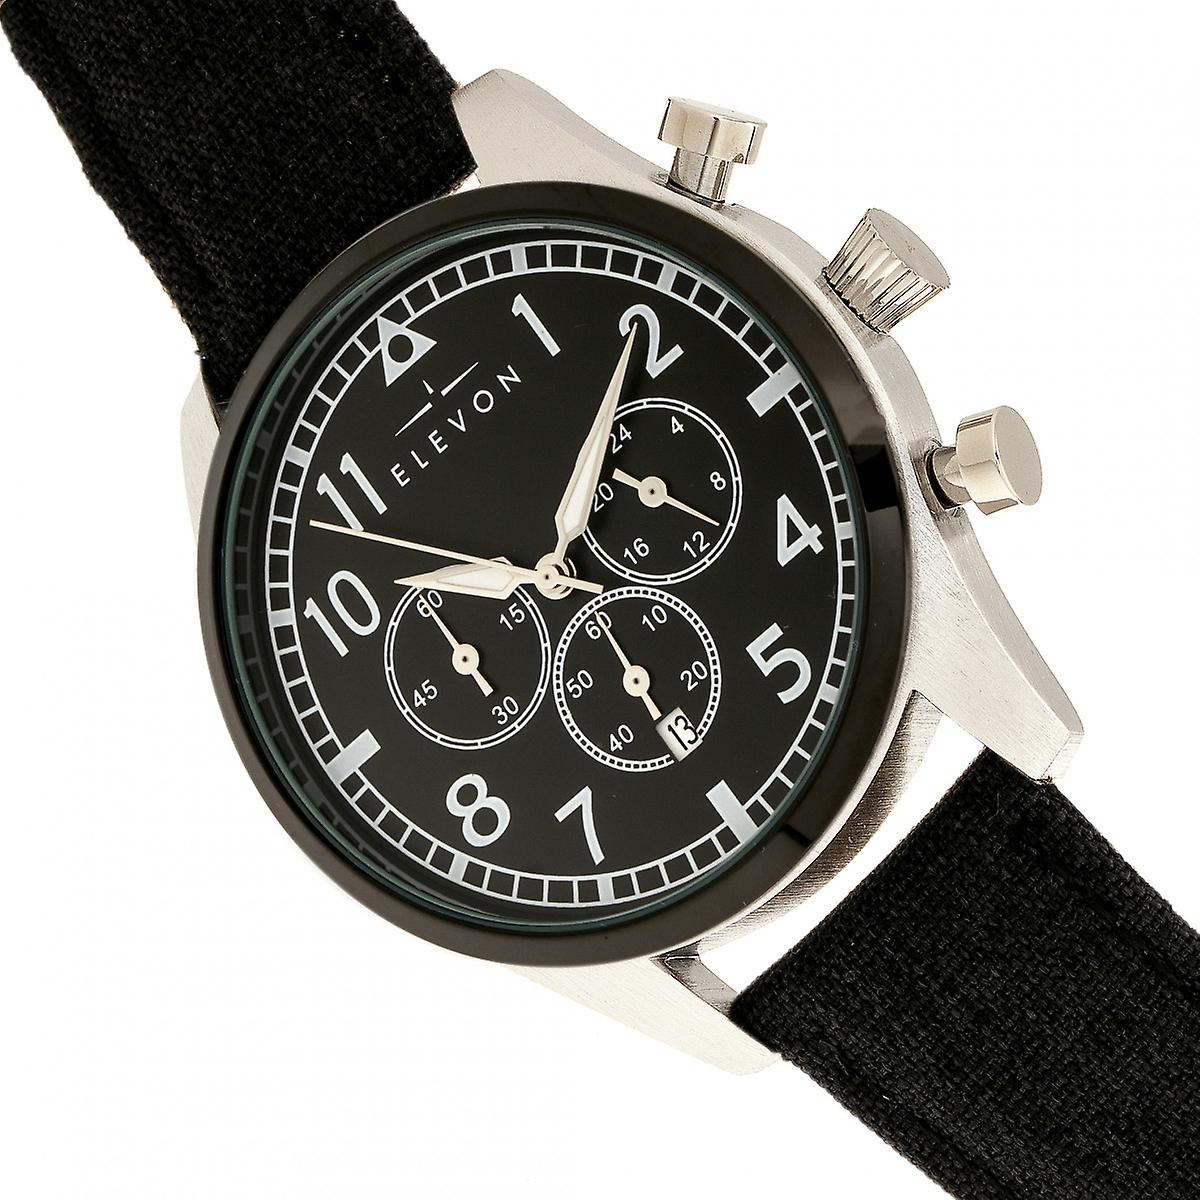 Elevon Curtiss Chronograph Nylon-Overlaid Leather-Band Watch - Silver/Black